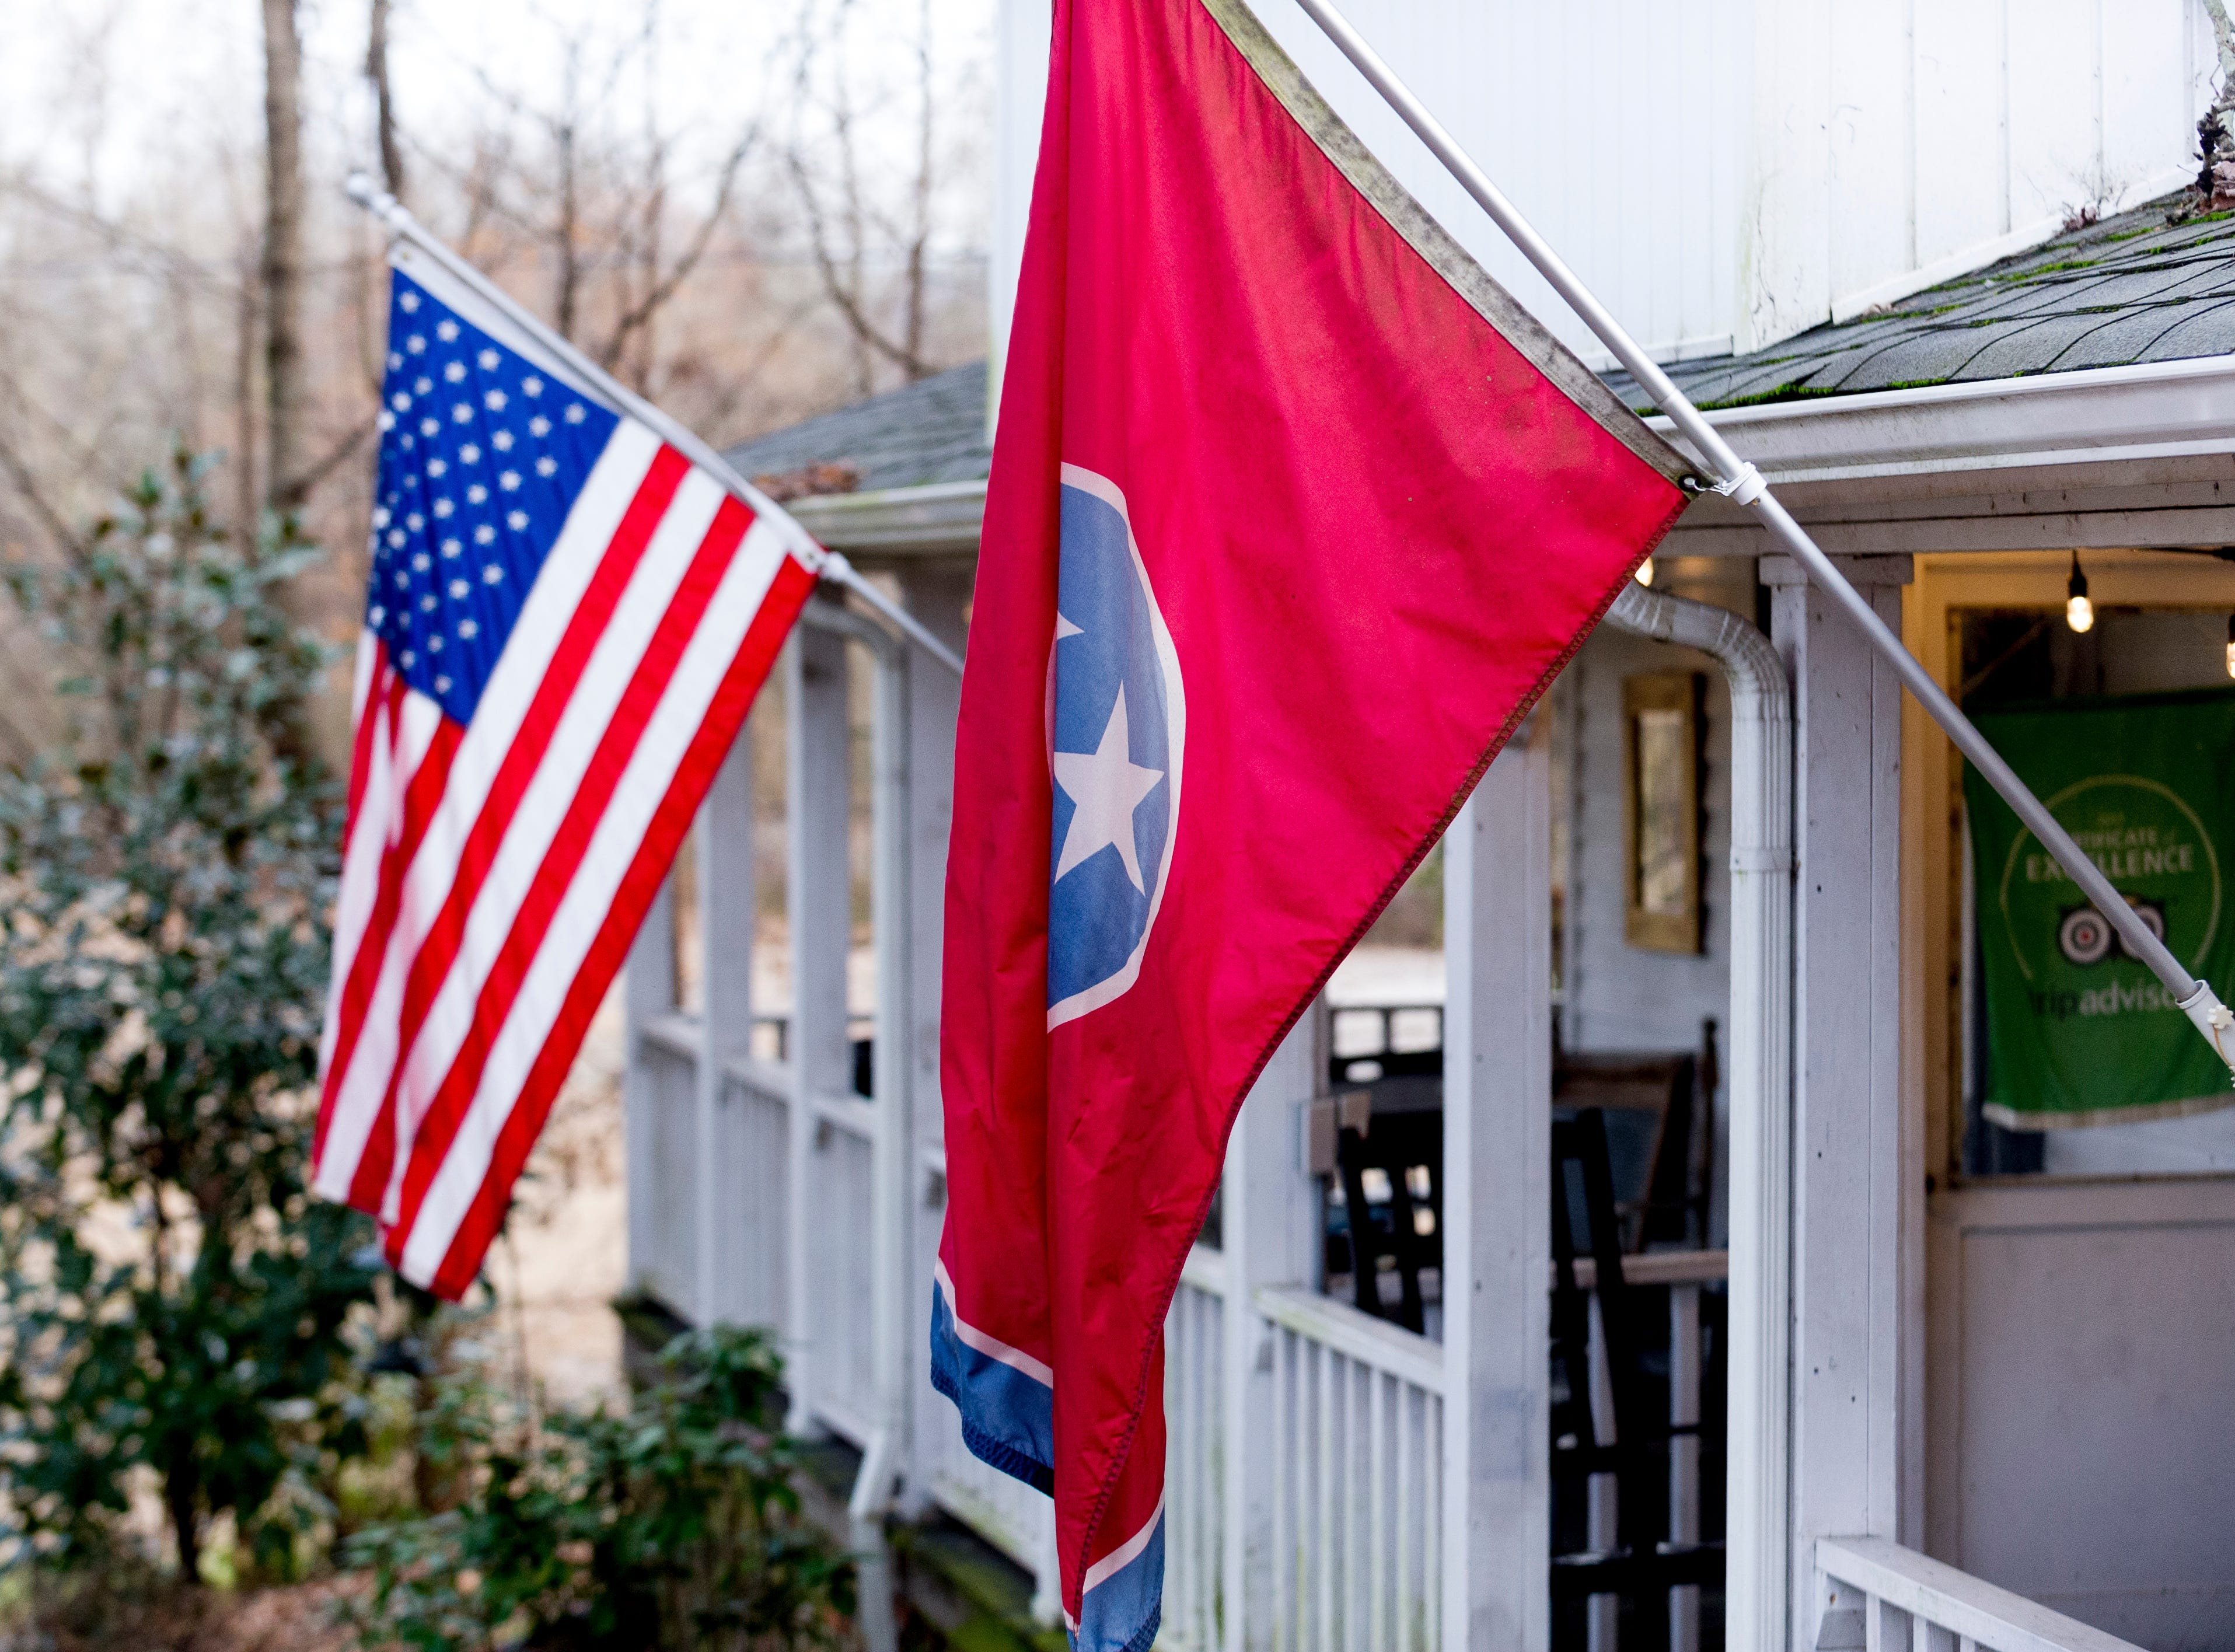 Flags adorn the porch at The Front Porch Restaurant in Powell, Tennessee on Saturday, December 29, 2018. For five years, owner Bart Elkins has worked to revive that experience of the front porch being used as the focus for family and friends.